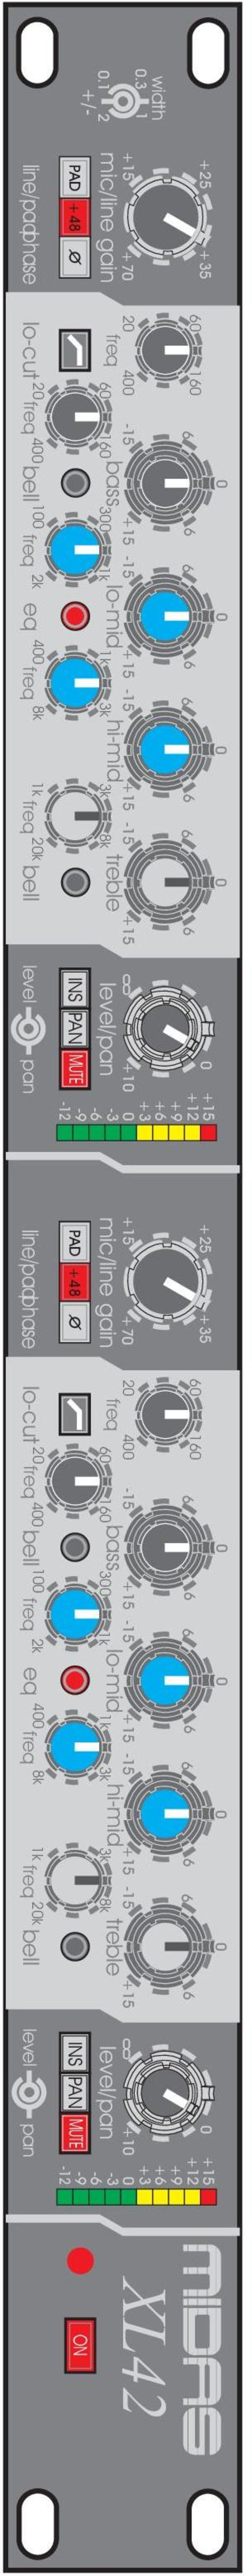 line/padphase lo-cut freq bell freq eq freq freq bell level pan PAD +48 O/ INS PAN MUTE +7 2 4 mic/line gain freq bass